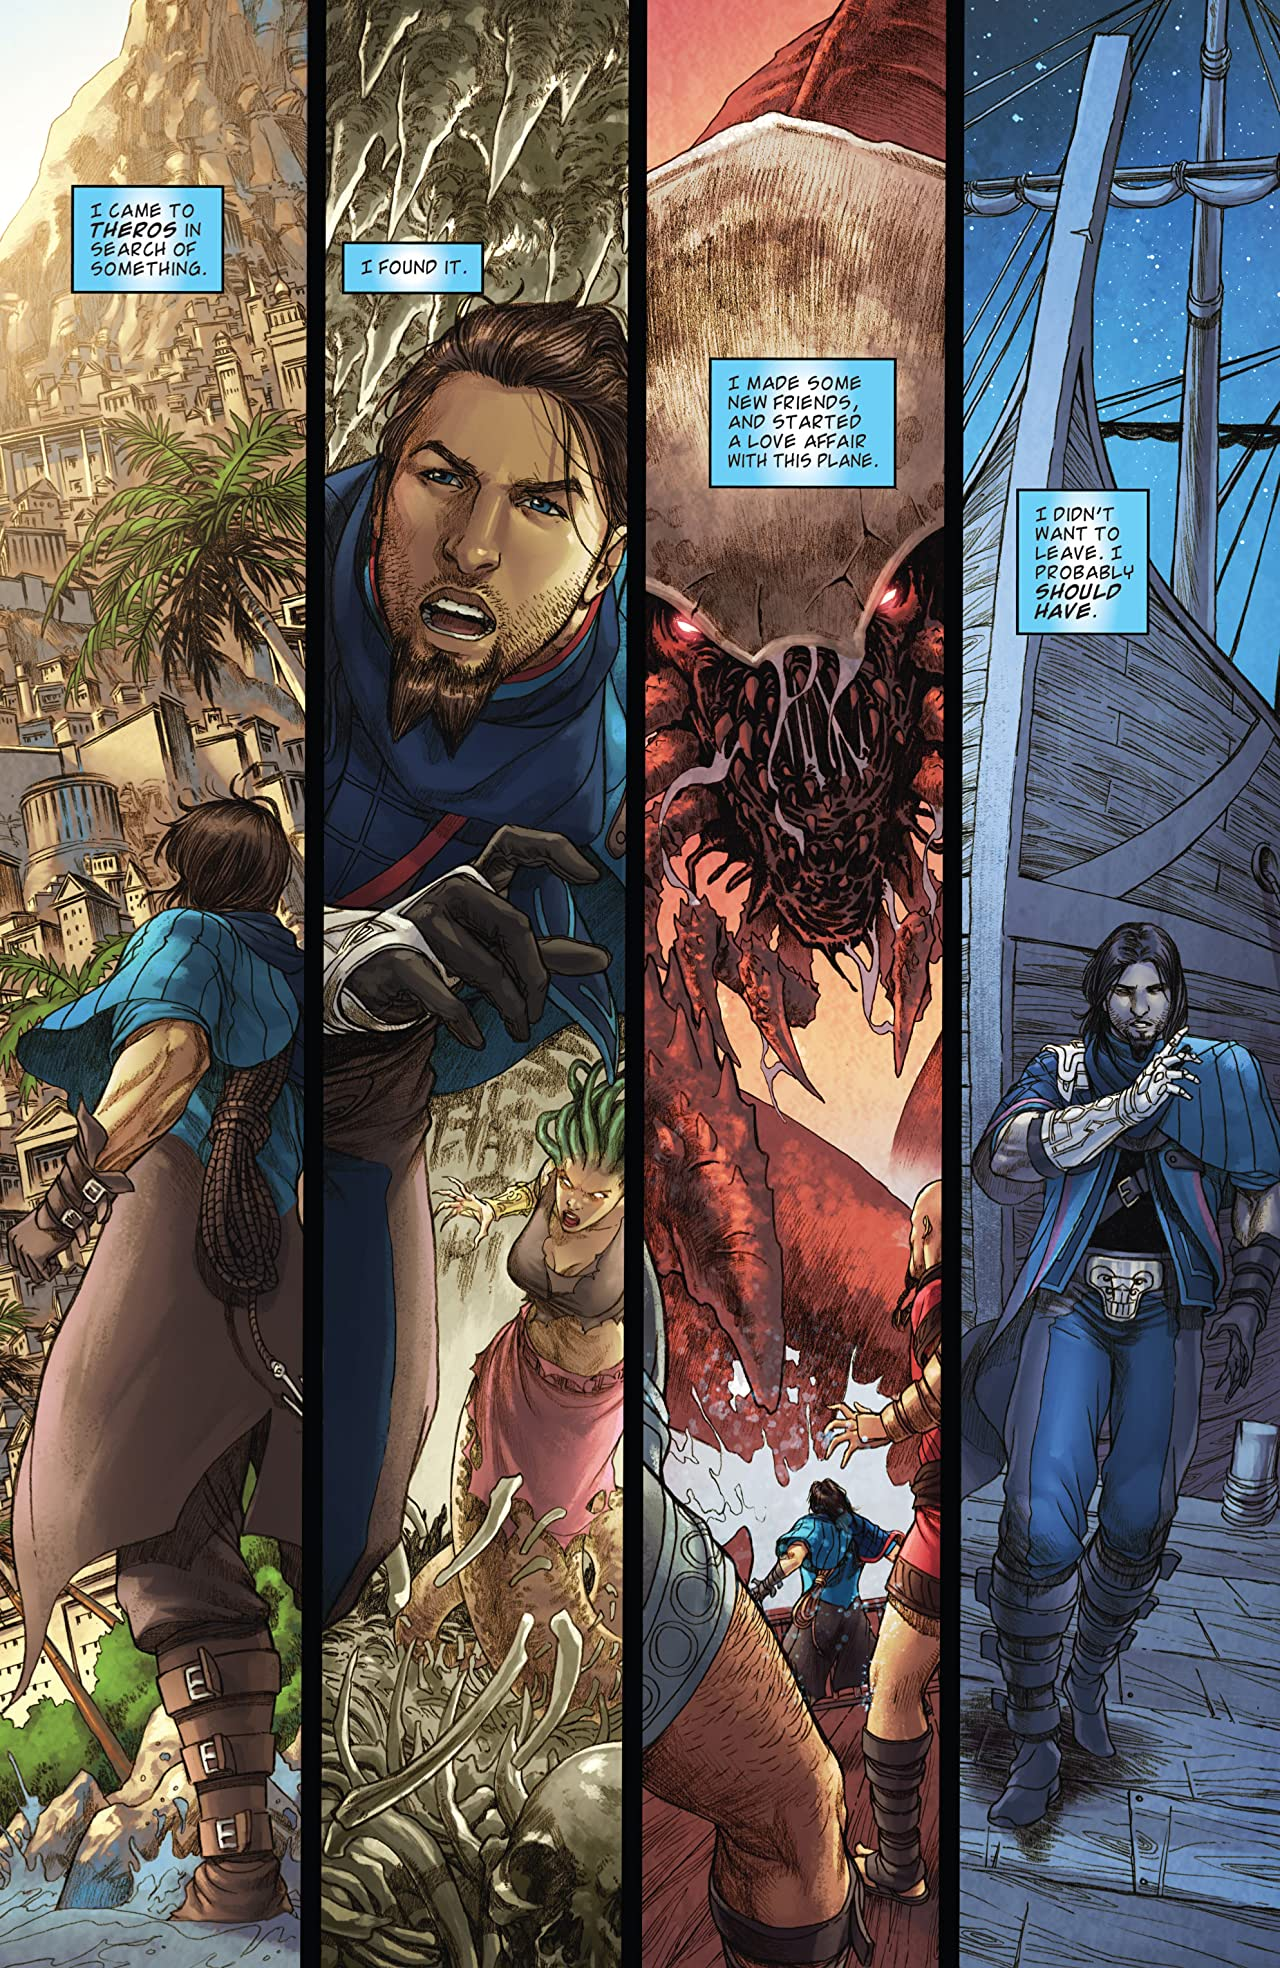 Magic the Gathering: Theros #5 (of 5)